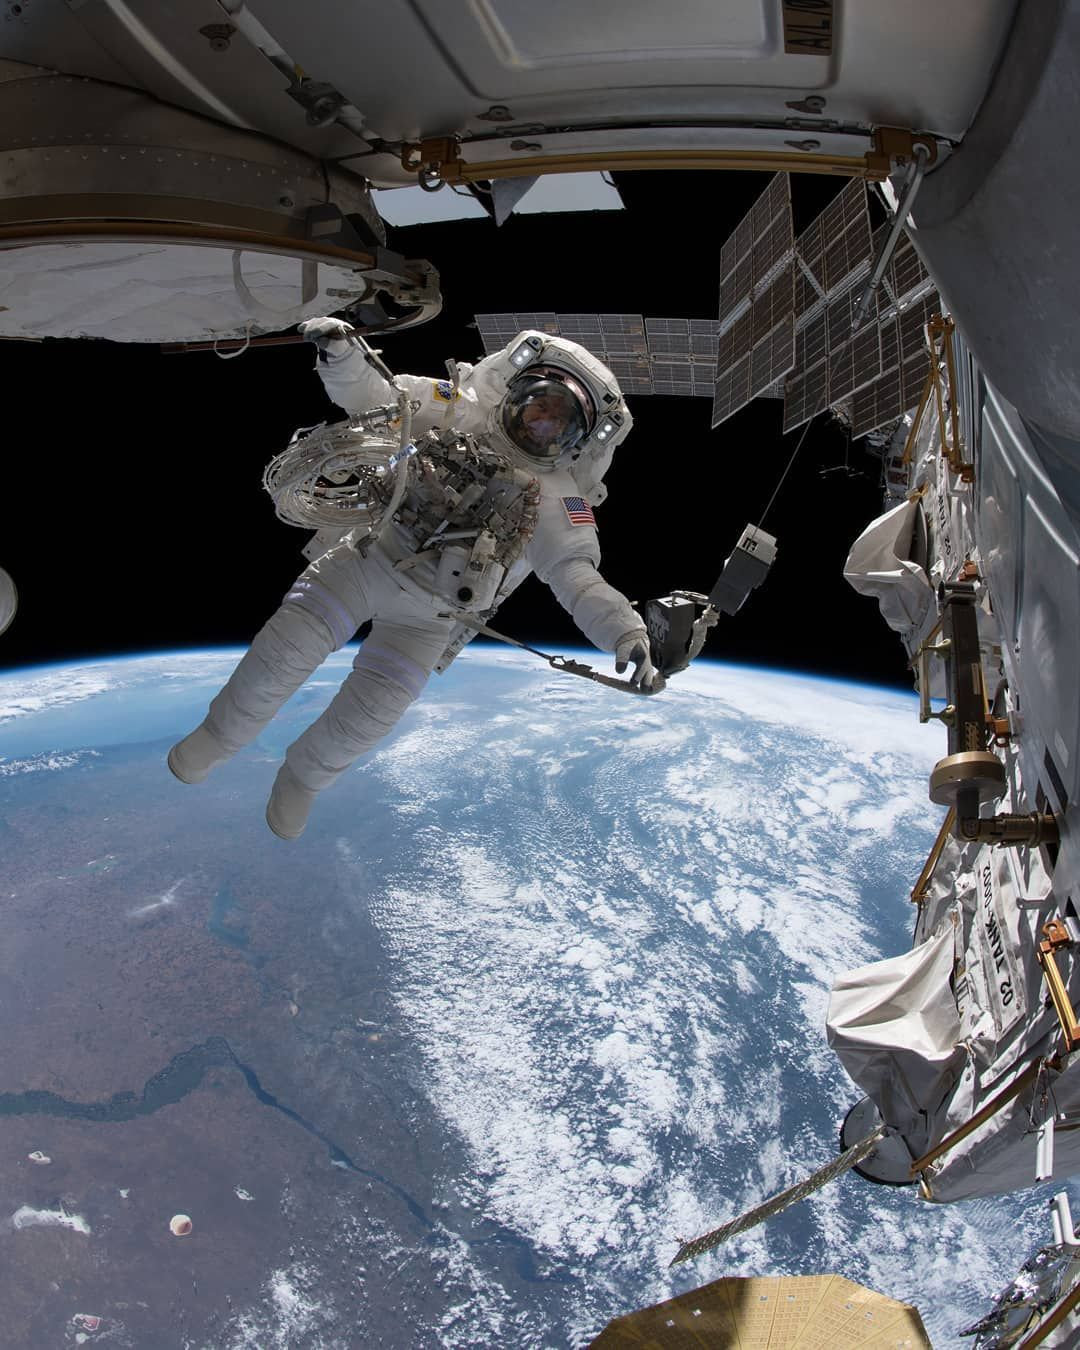 Nasa Astronaut Drew Feustel Is Pictured Tethered To The